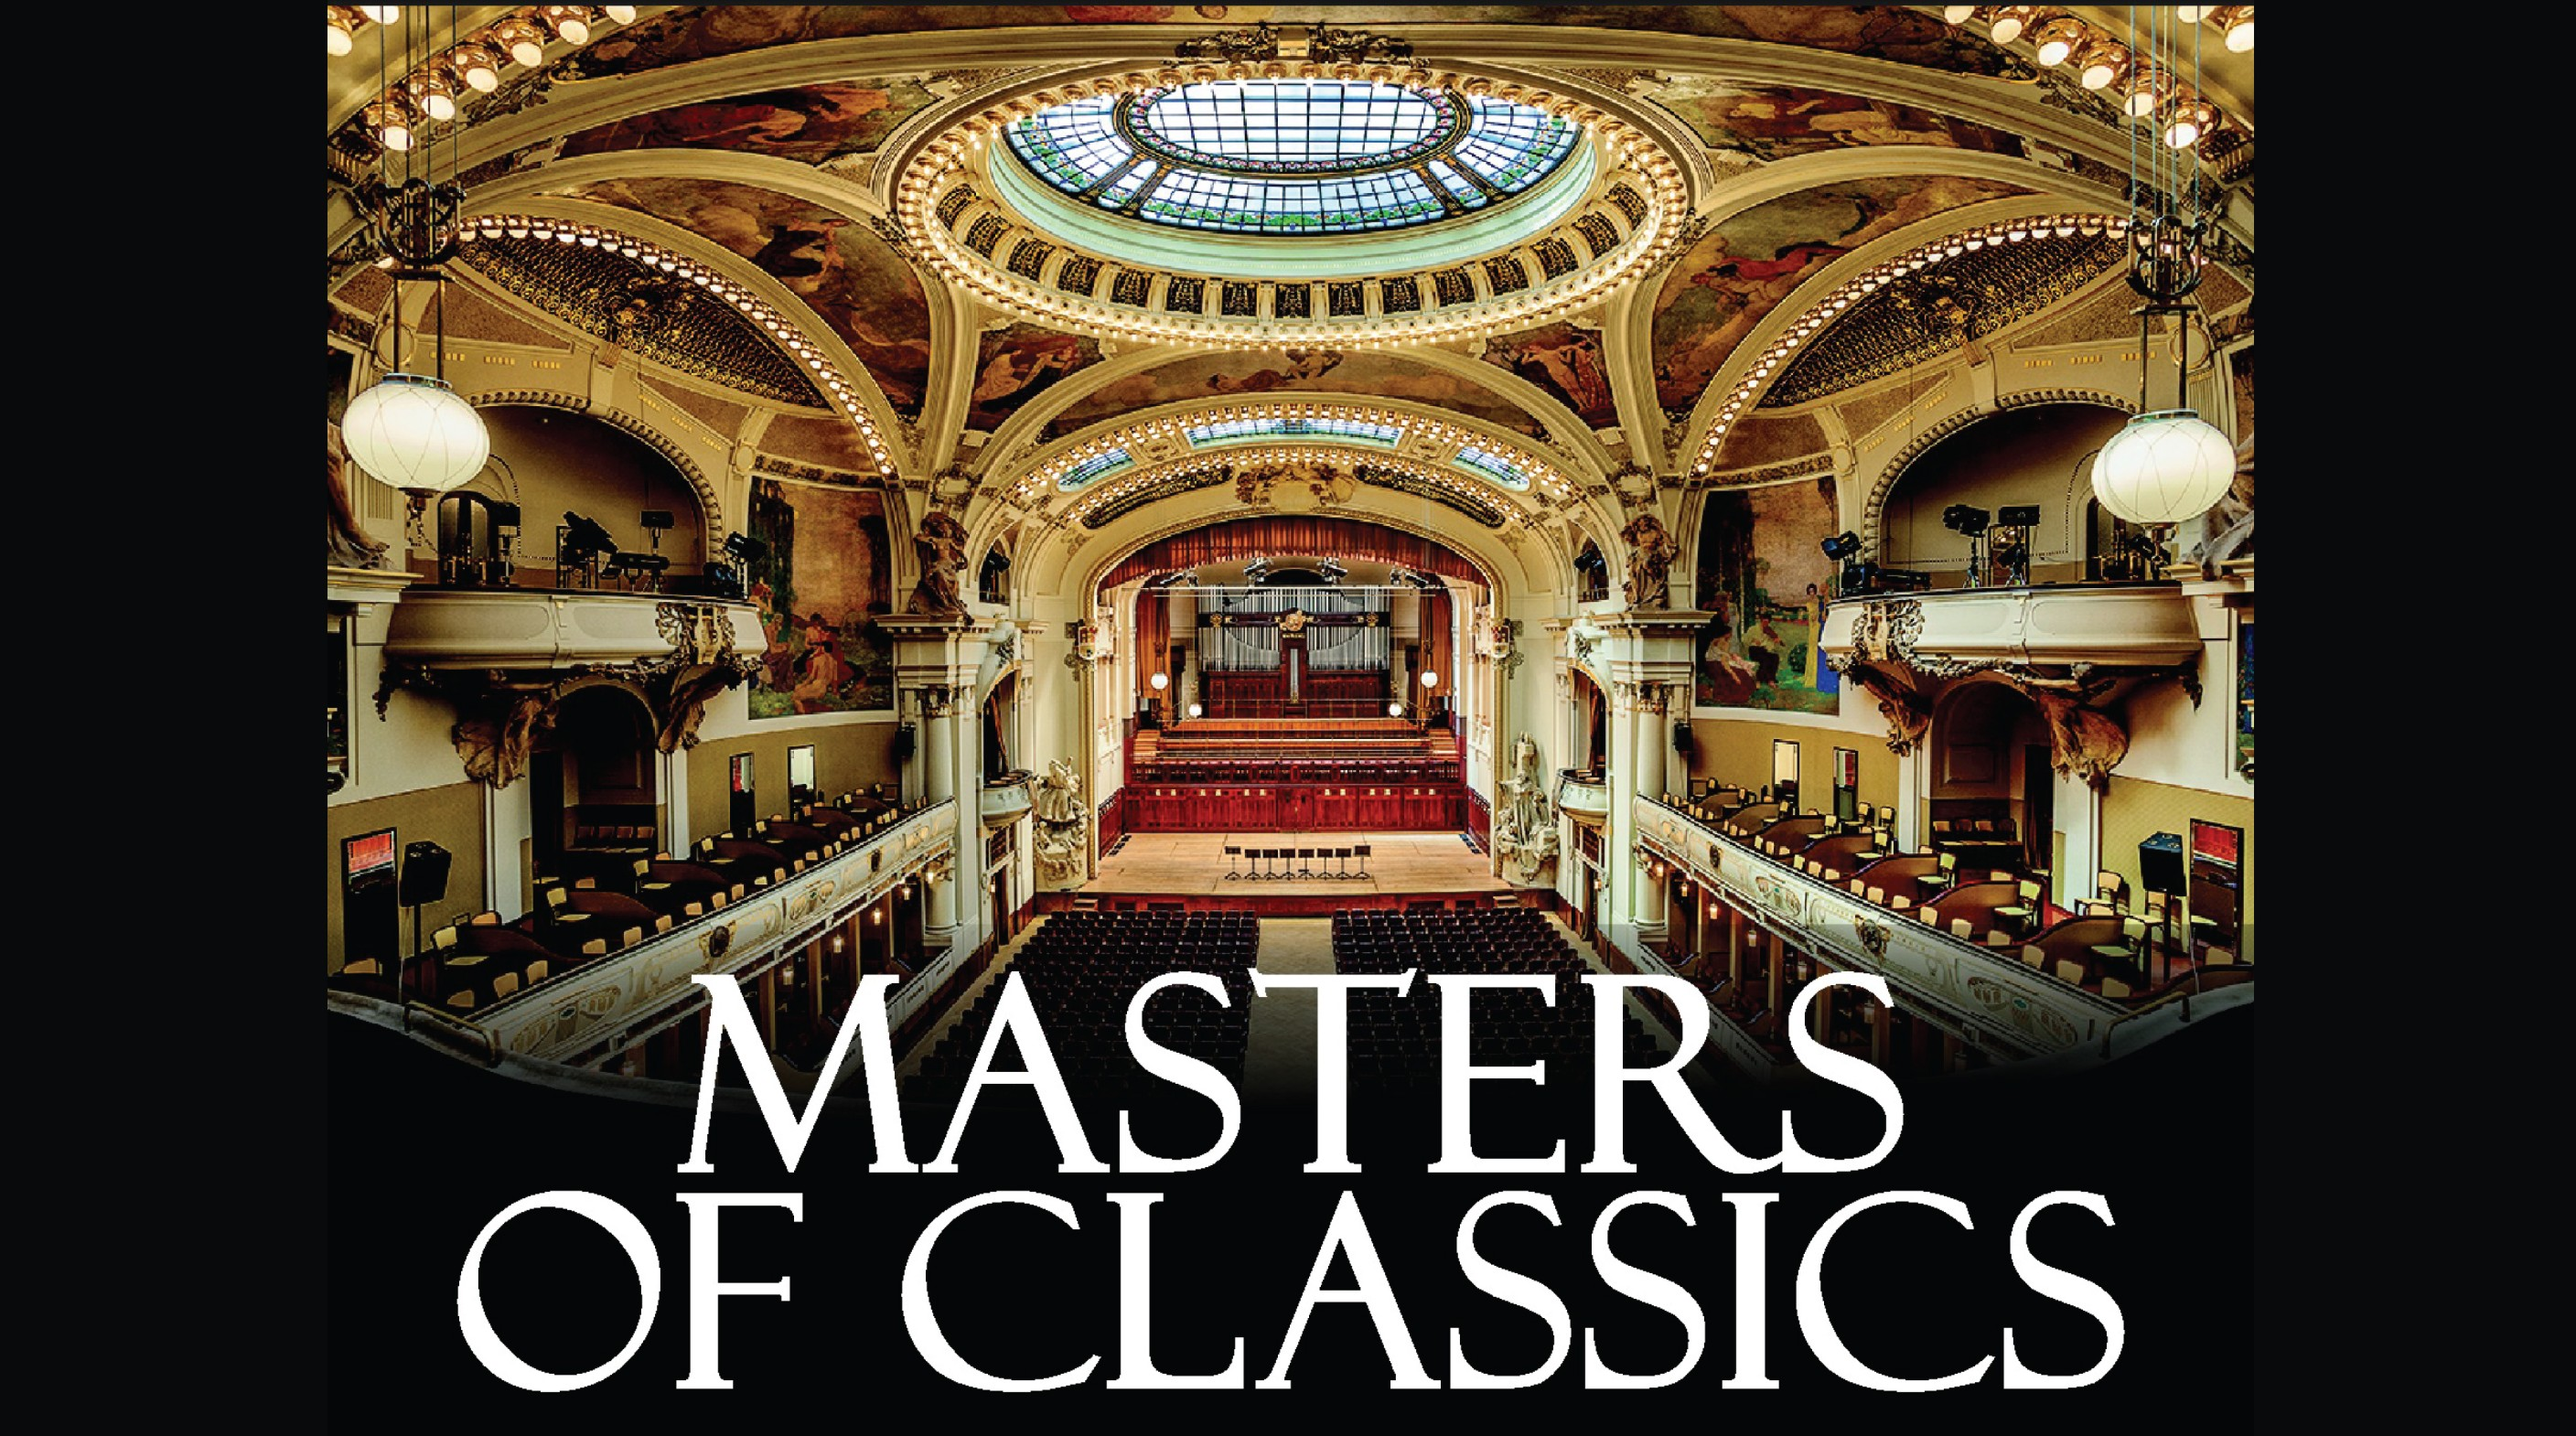 MASTERS OF CLASSICS IN THE MUNICIPAL HOUSE